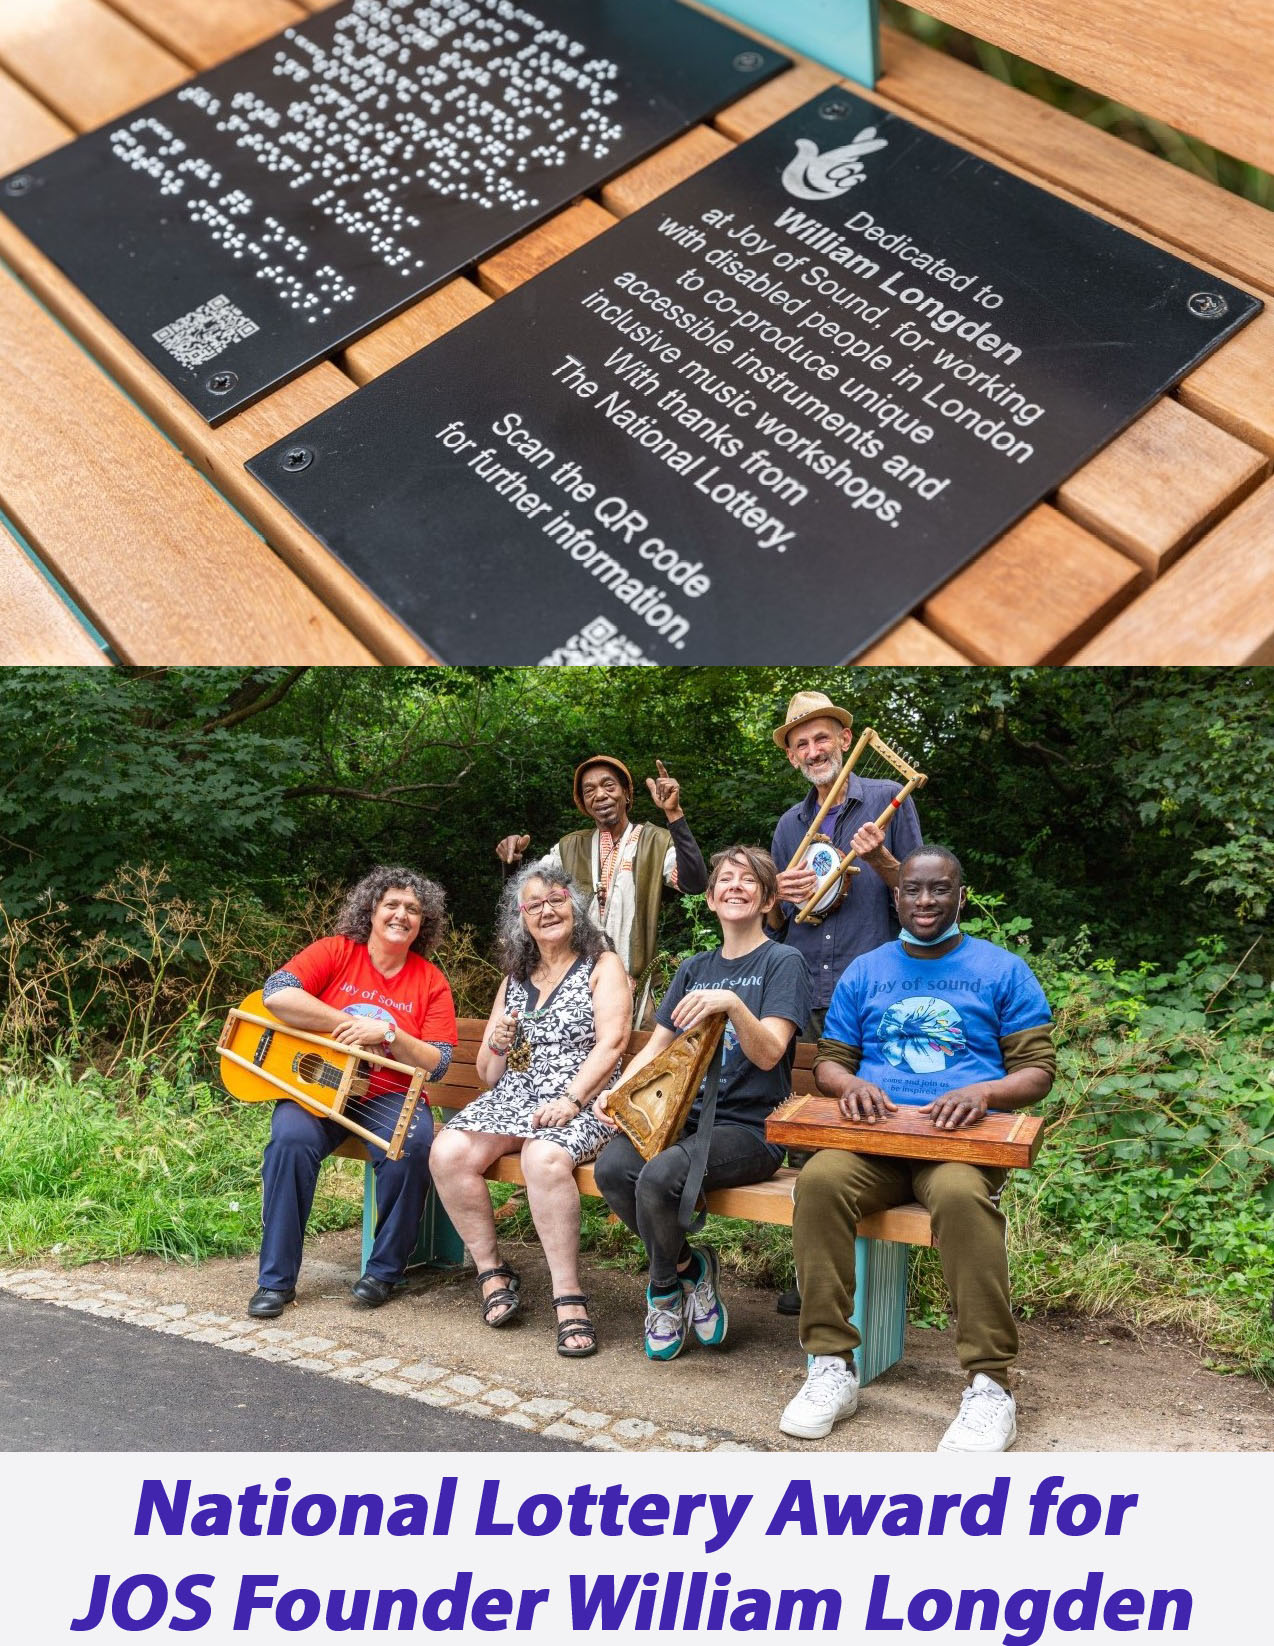 photo of some of the JOS team at the dedication of the award in the form of a bench